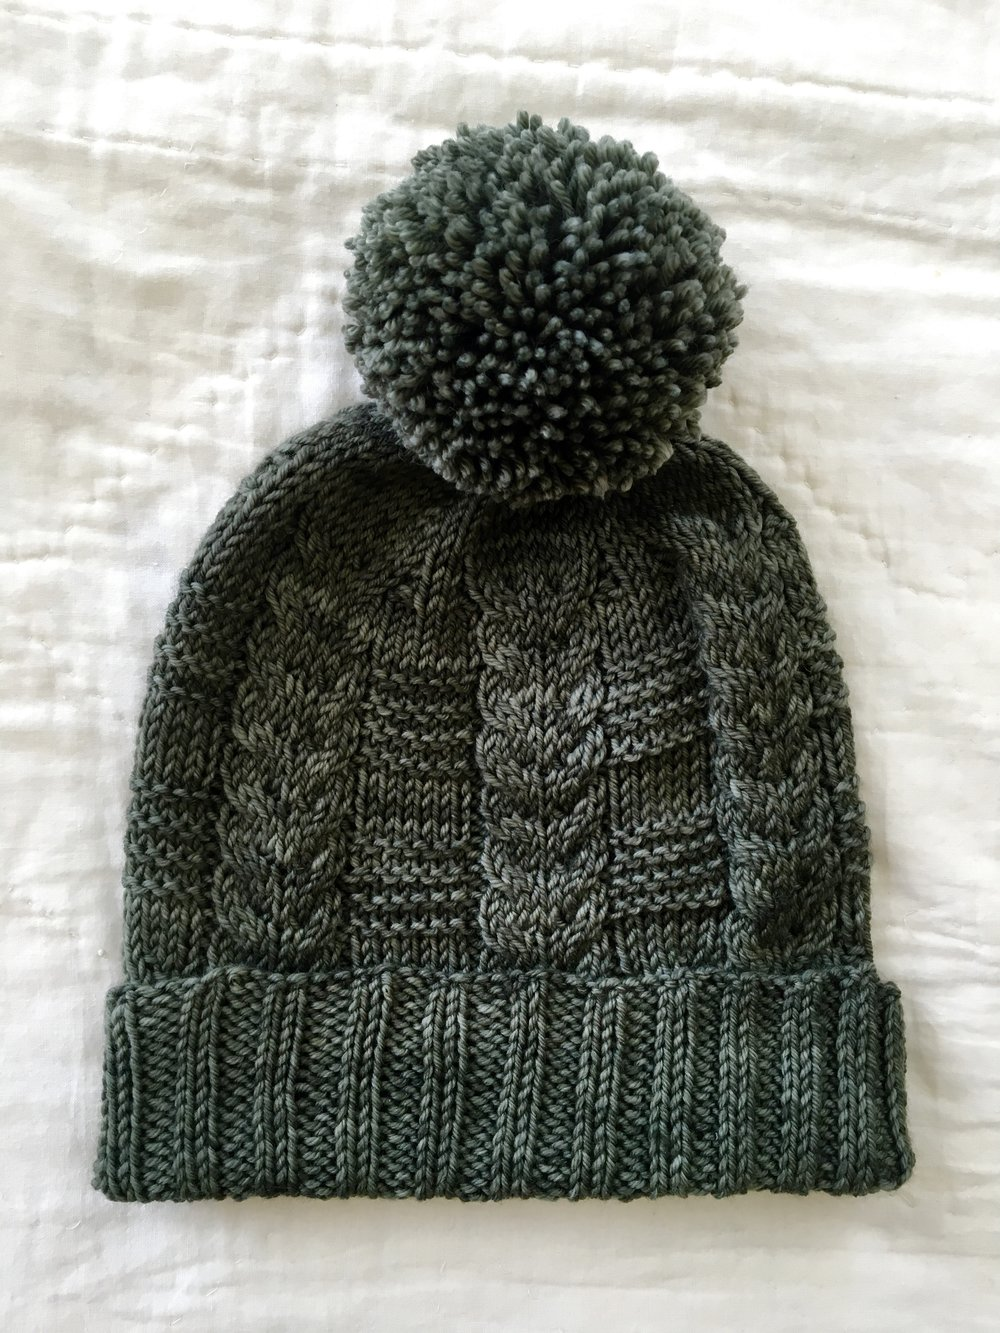 Alicia Plummer's Pondhopper Hat Pattern